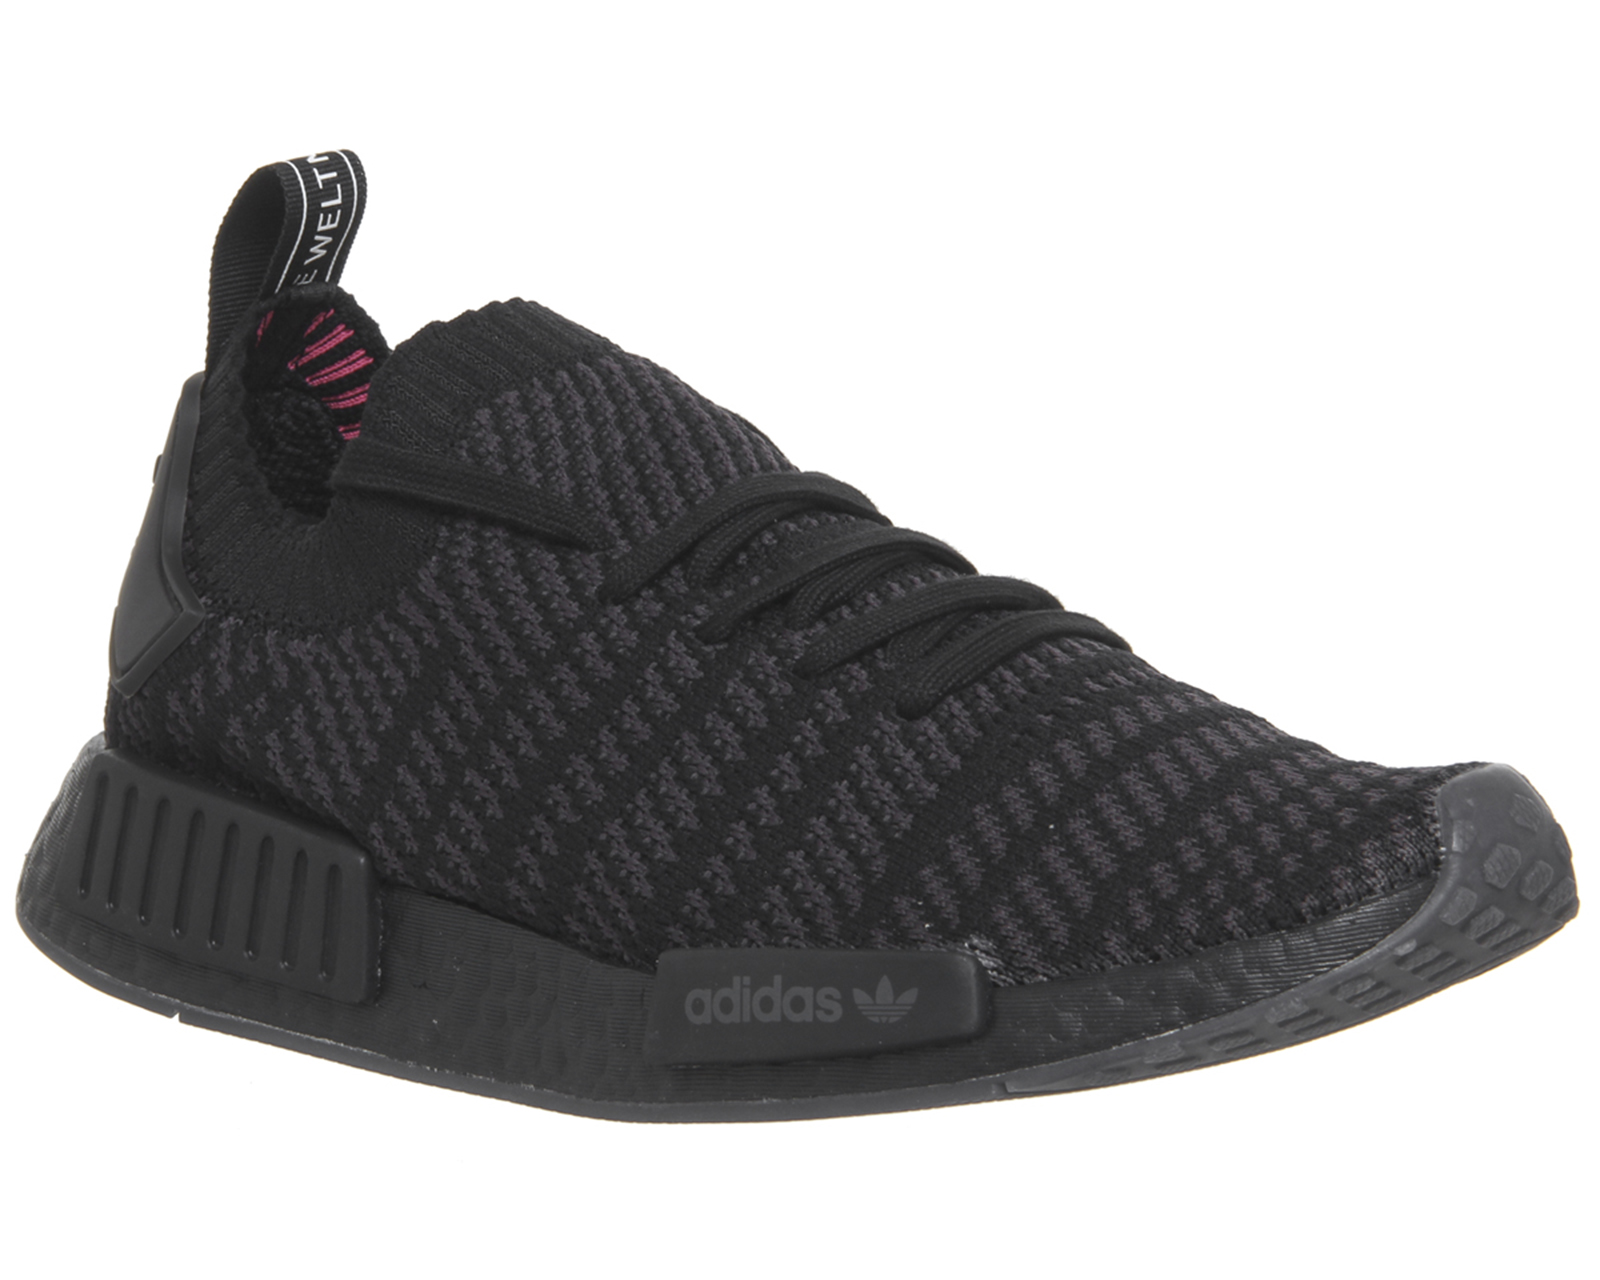 5c641d95d Sentinel Adidas Nmd R1 Trainers Core Black Utility Black Solar Pink  Trainers Shoes